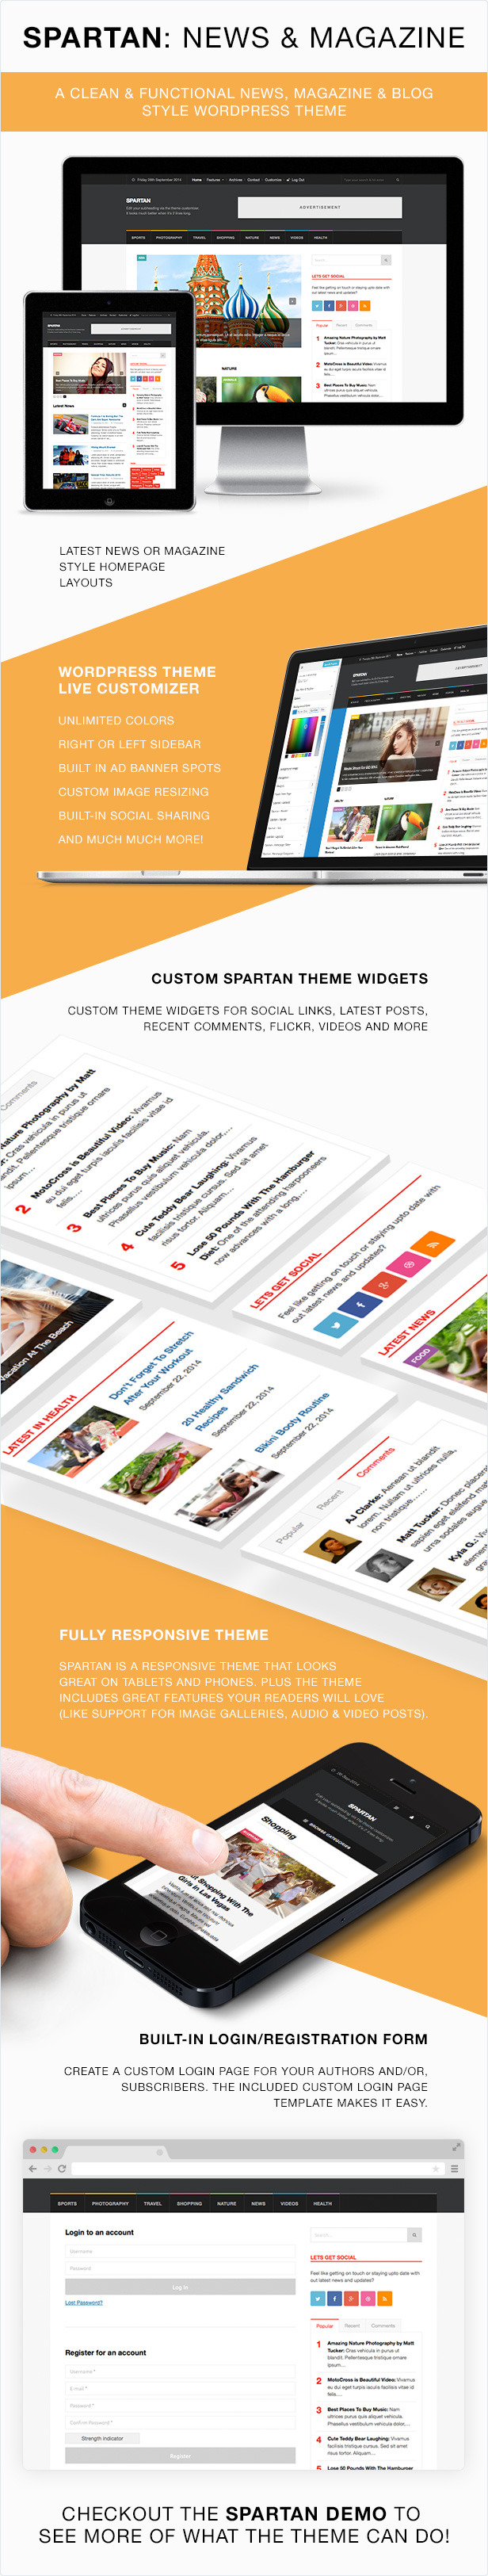 Spartan WordPress Theme Features